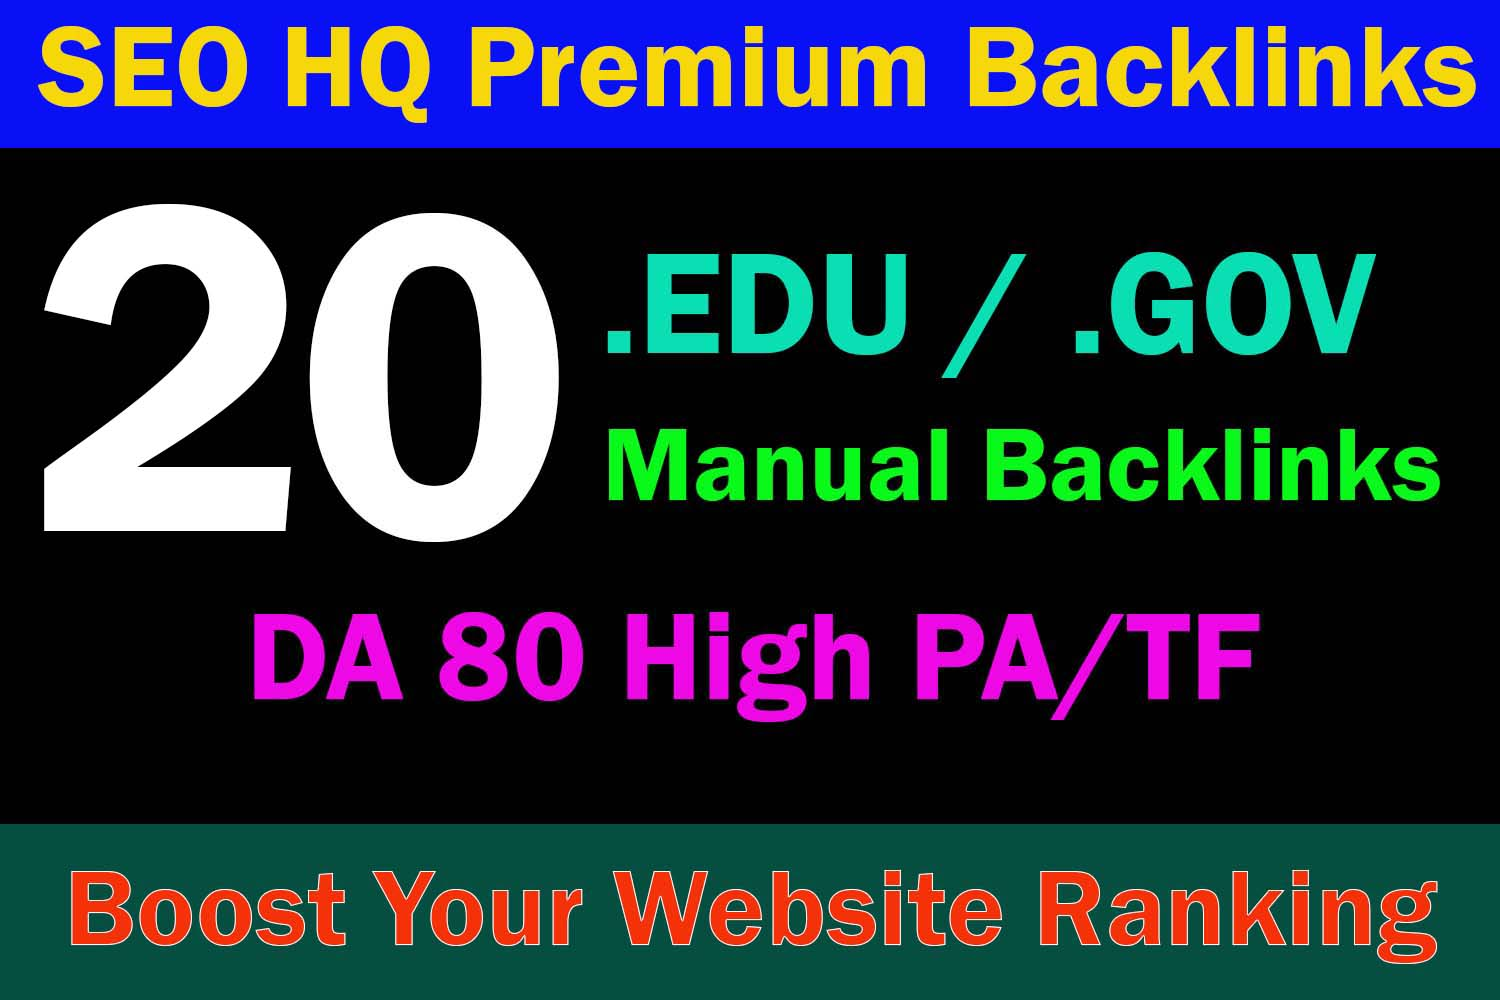 20 EDU/GOV High Authority Dofollow Backlinks To Top DA 80 Premium Sites - Boost website Ranking